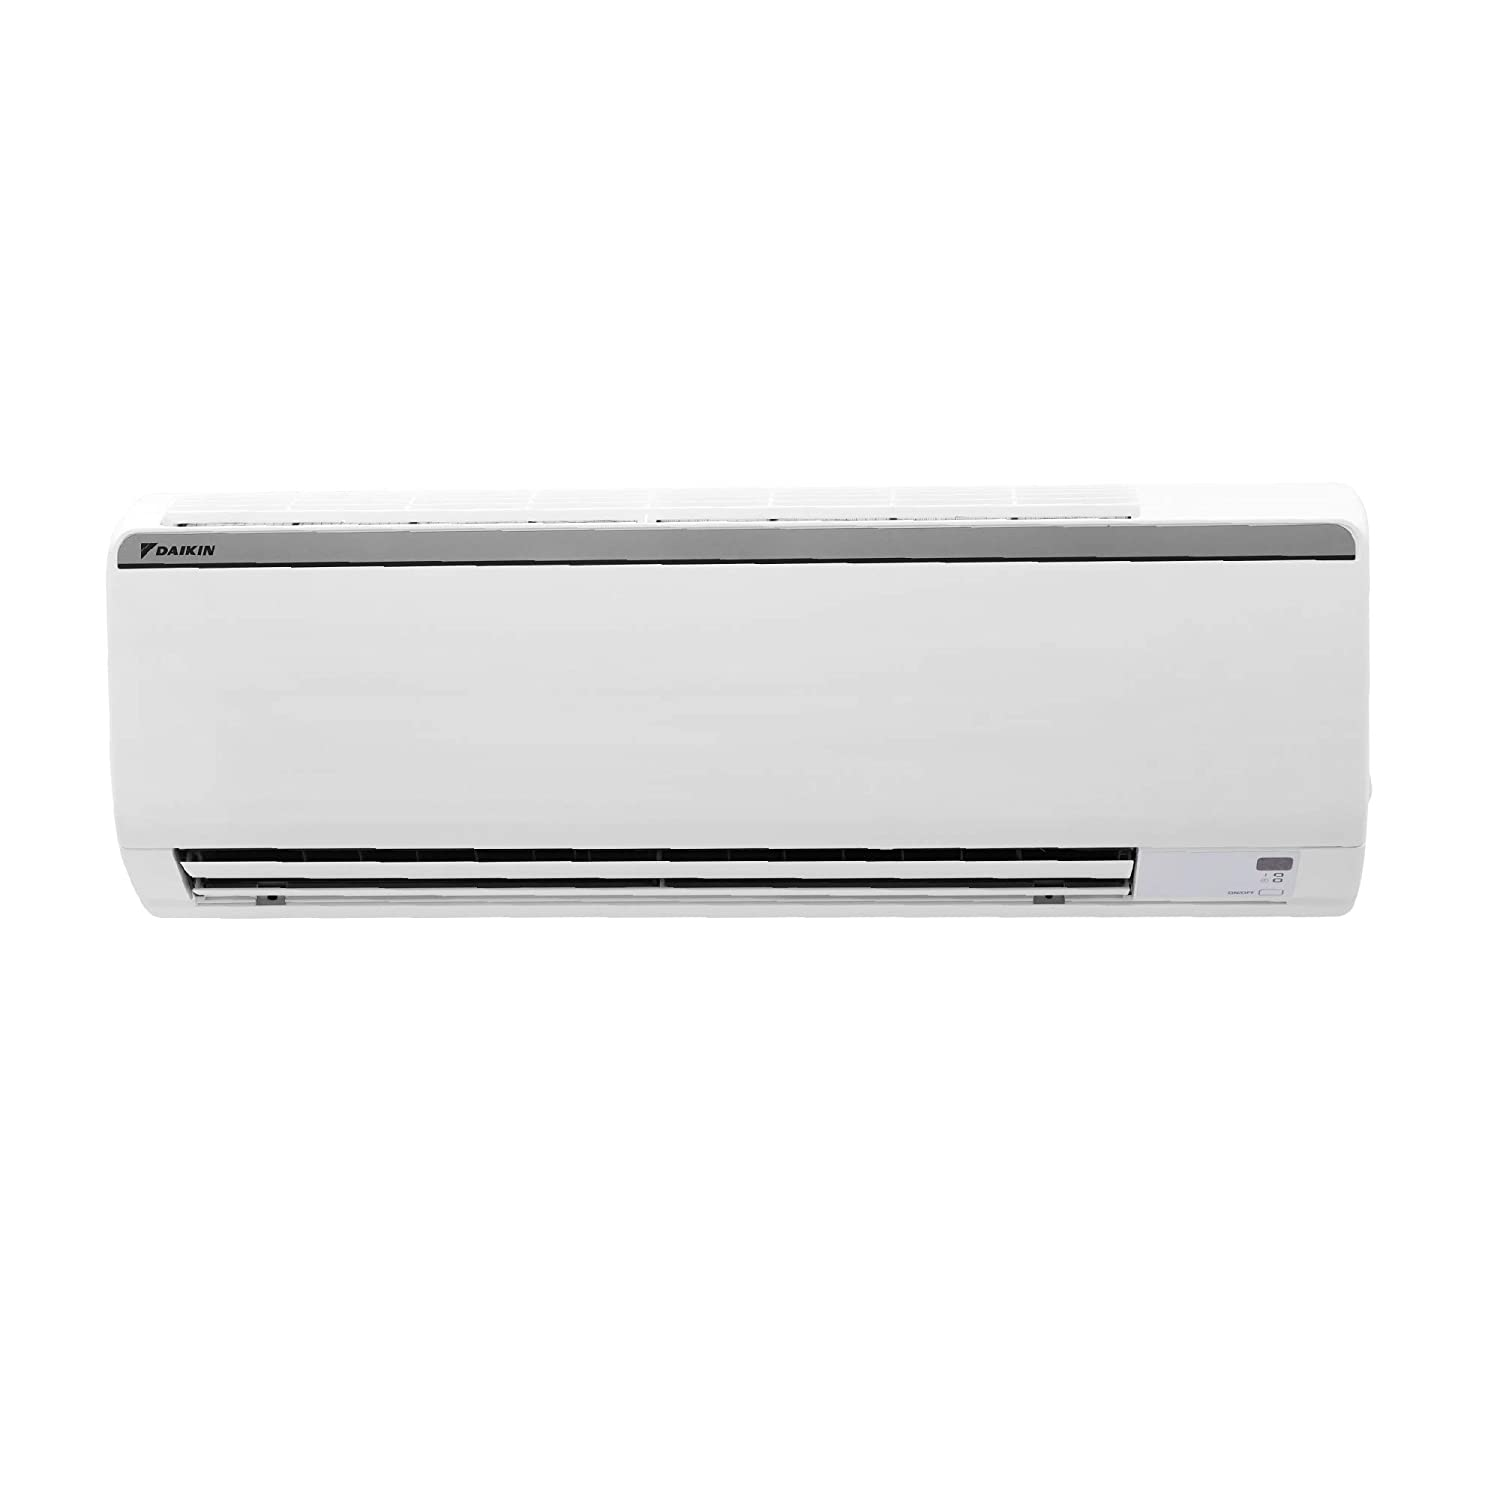 Top 10 Best Air Conditioners (Ac) in India 2021